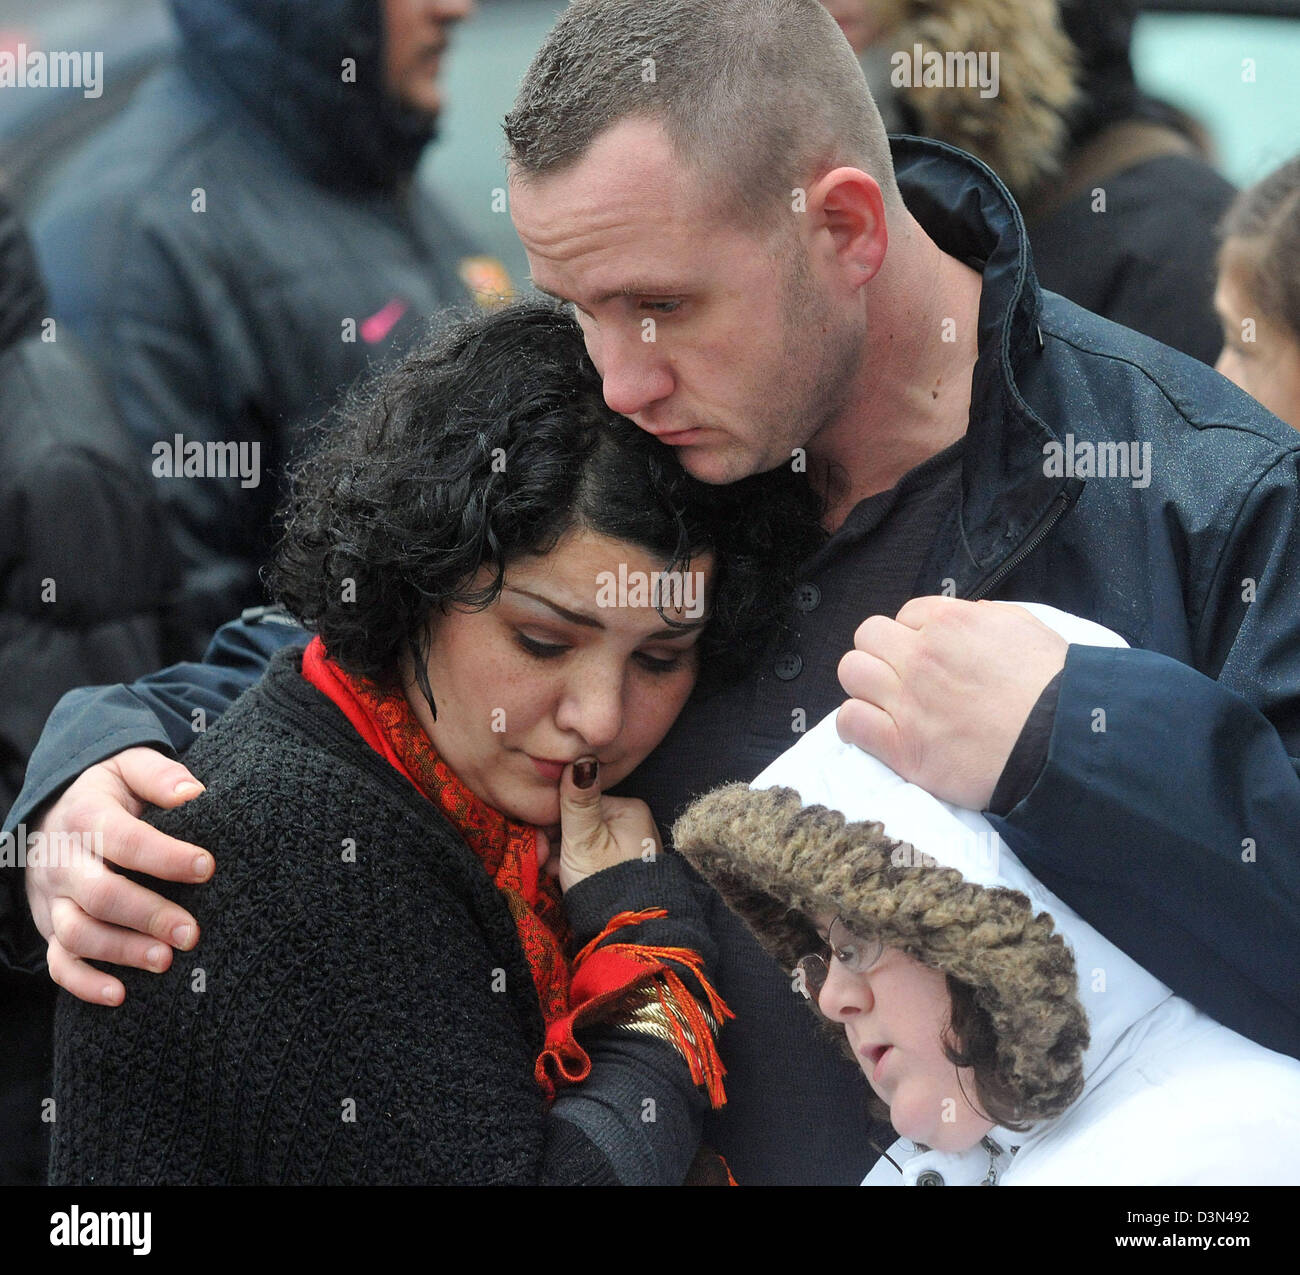 A family hugs in Sandy Hook, Newtown, Connecticut following the Sandy Hook shooting massacre. - Stock Image